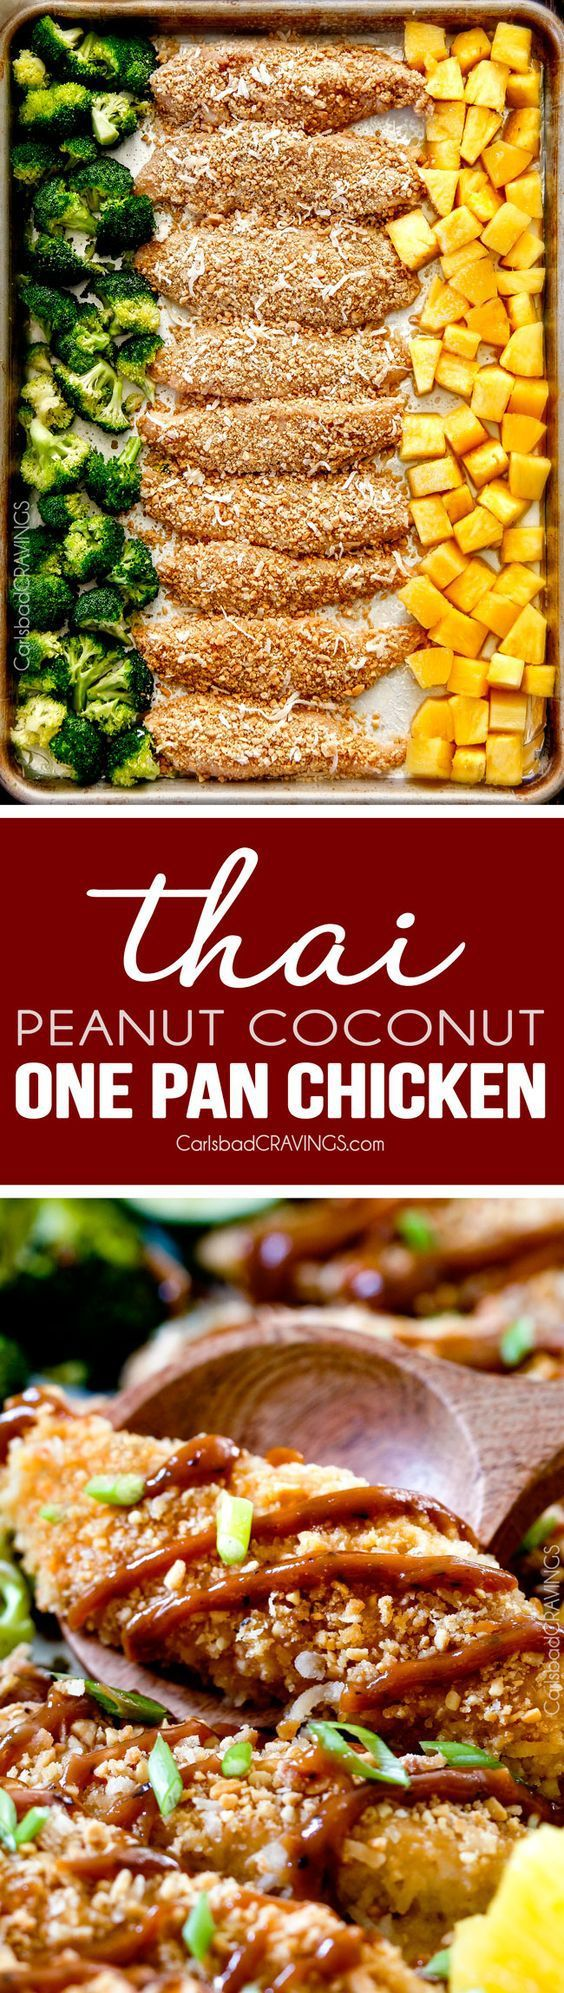 The BEST Sheet Pan Suppers Recipes – Easy and Quic